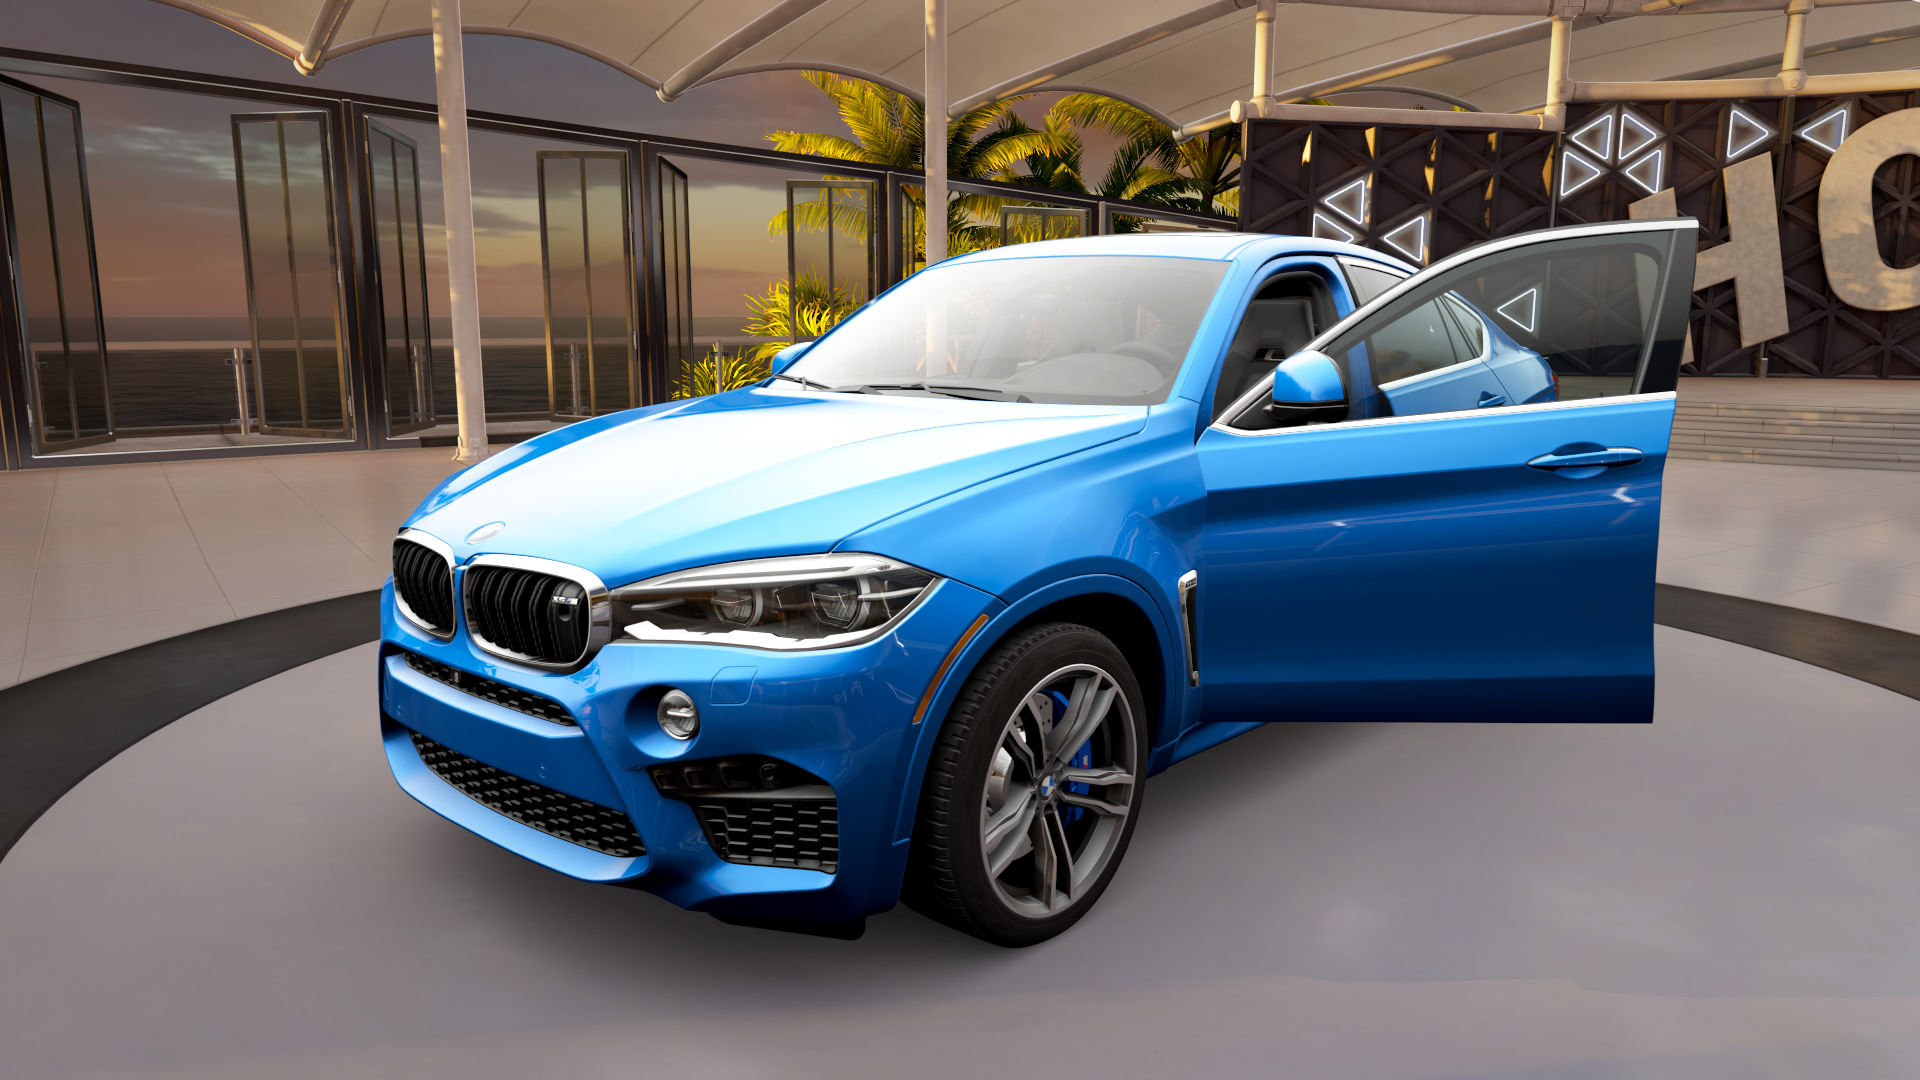 Bmw X6 M 2015 Forza Motorsport Wiki Fandom Powered